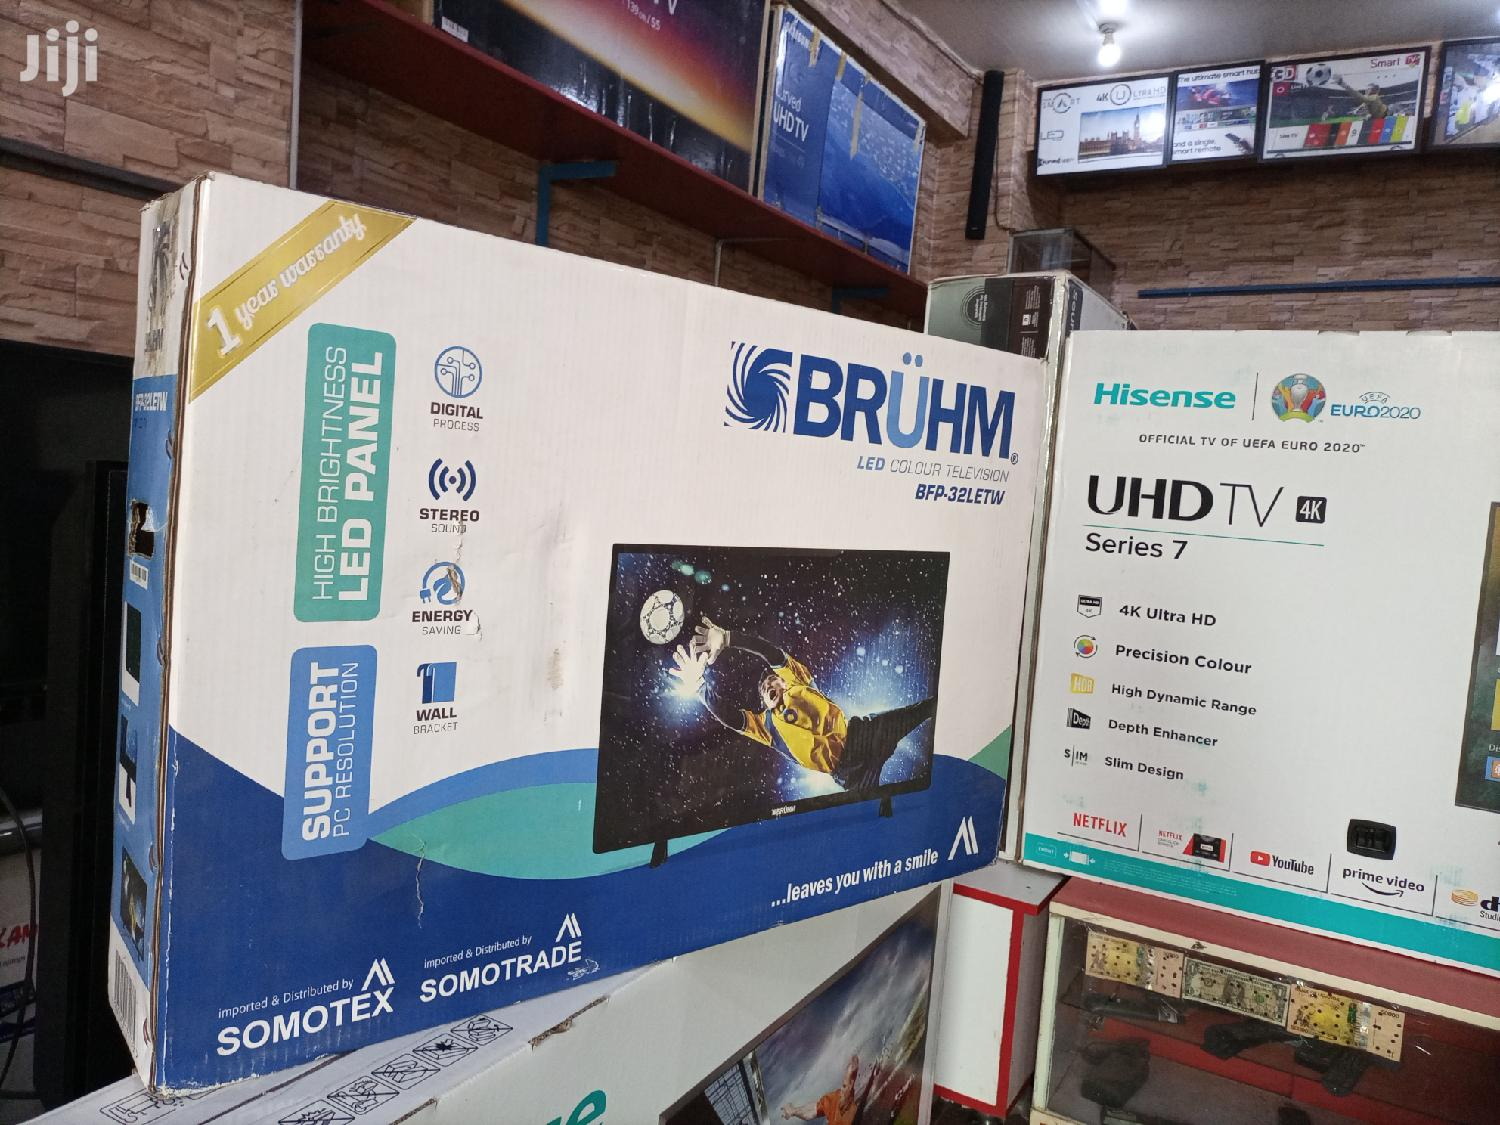 Bruhm 32 Inches LED Digital Flat Screen Tv.